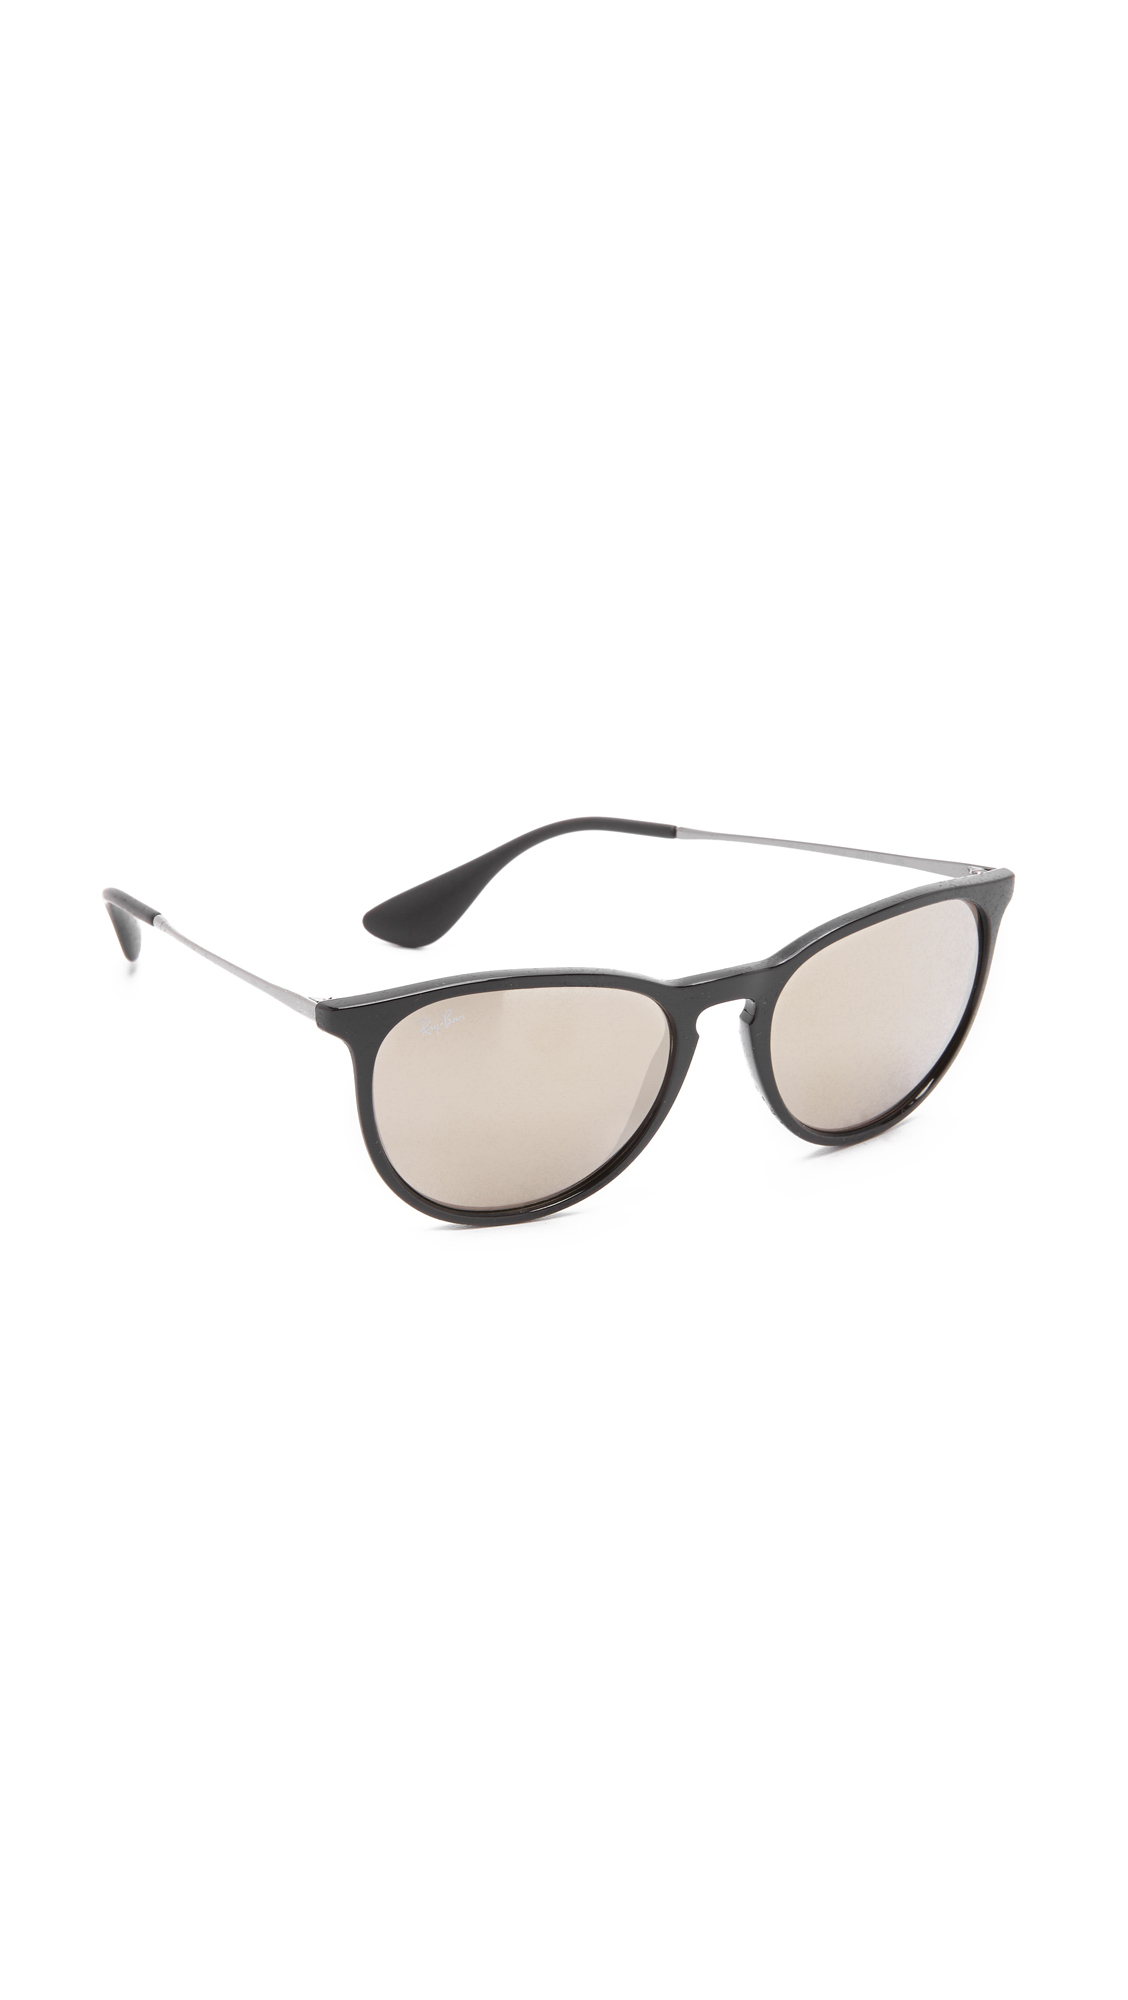 27615fbd60c Black Ray Bans With Gold Sides « Heritage Malta